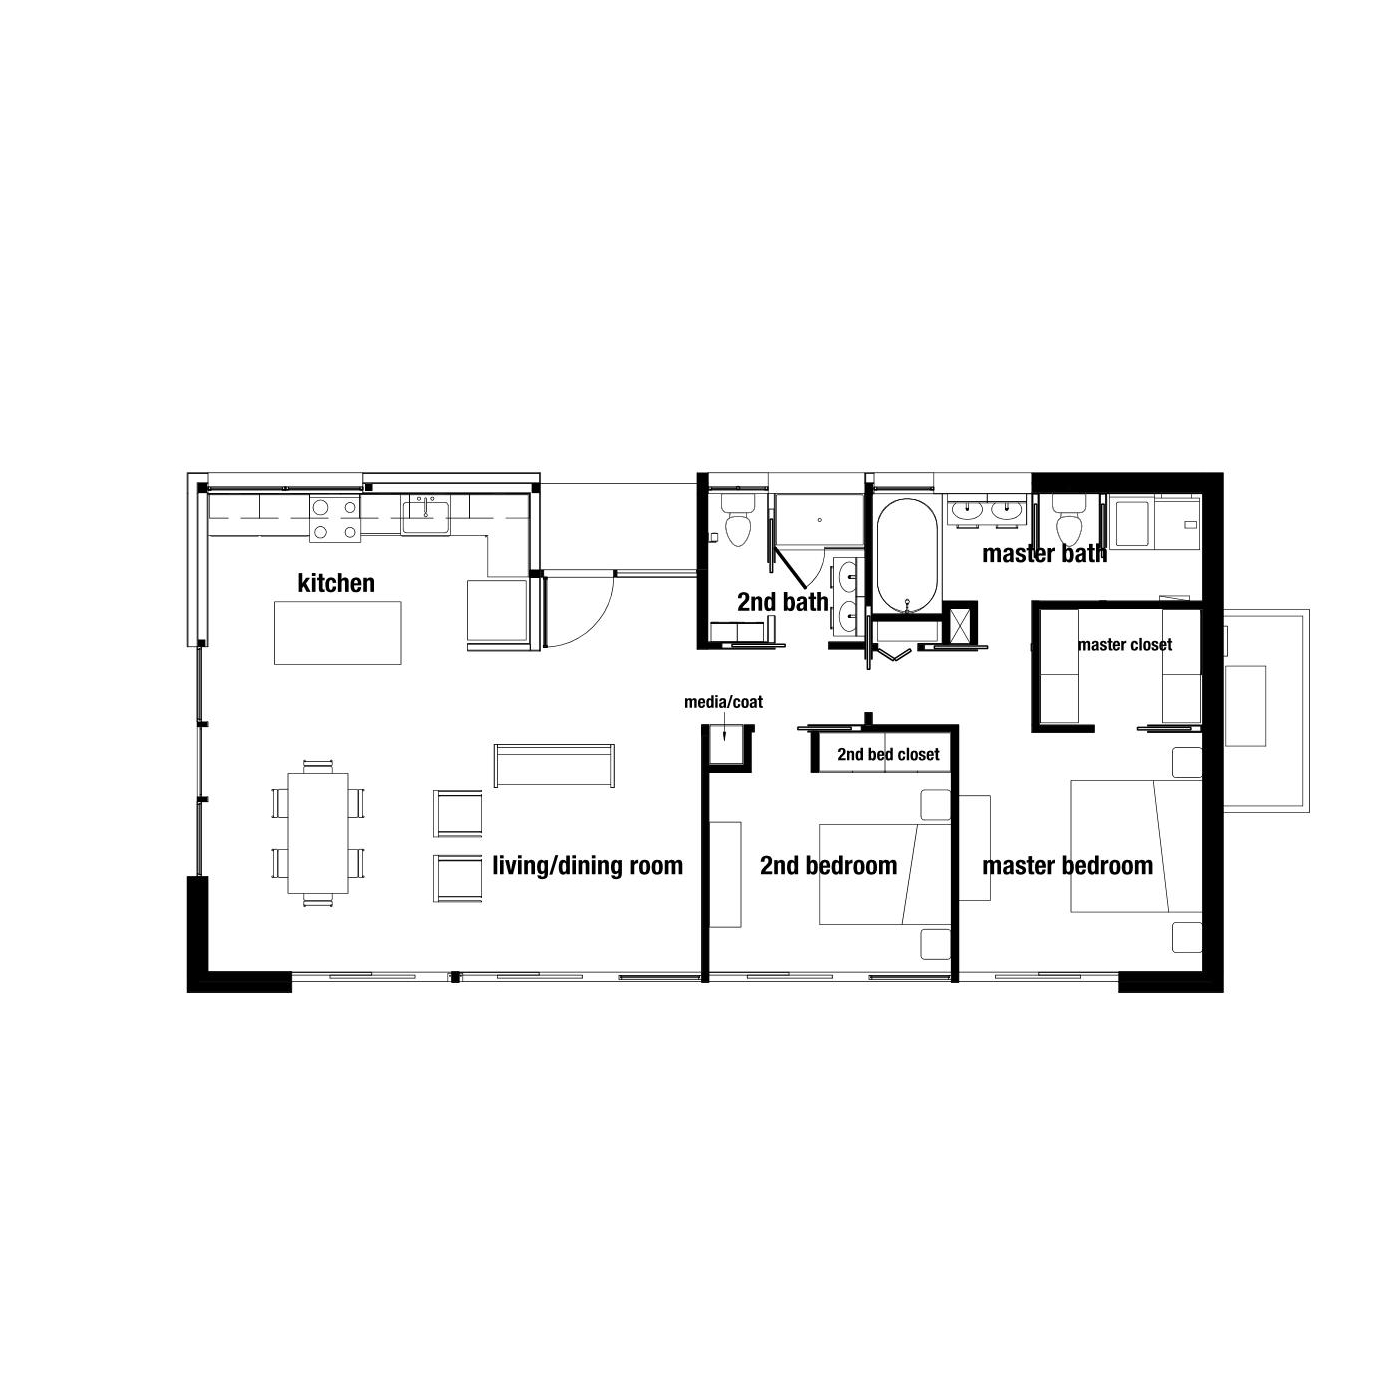 "OVERALL DIMENSION: 51'-10"" x 26'-0""   OVERALL SQ. FT.: approx. 1344 sq. ft.   LIVING & DINING: 24'-8"" x 16'-0""   KITCHEN: 16'-1"" x 7'-10""   PORCH: 7'-10"" x 4'-10""   COAT/MEDIA CLOSET: 6 sq. ft.   MASTER BEDROOM: 12'-6"" x 12'-2""    MASTER BATHROOM: 71 sq. ft. MASTER CLOSET: 46 sq. ft.   MASTER LINEN CLOSET: 4 sq. ft. 2nd BEDROOM: 12'-2"" x 9'-9""   2nd BEDROOM CLOSET: 9 sq. ft.   2nd BATHROOM: 58 sq. ft.   LAUNDRY/UTILITY ROOM: 25 sq. ft."